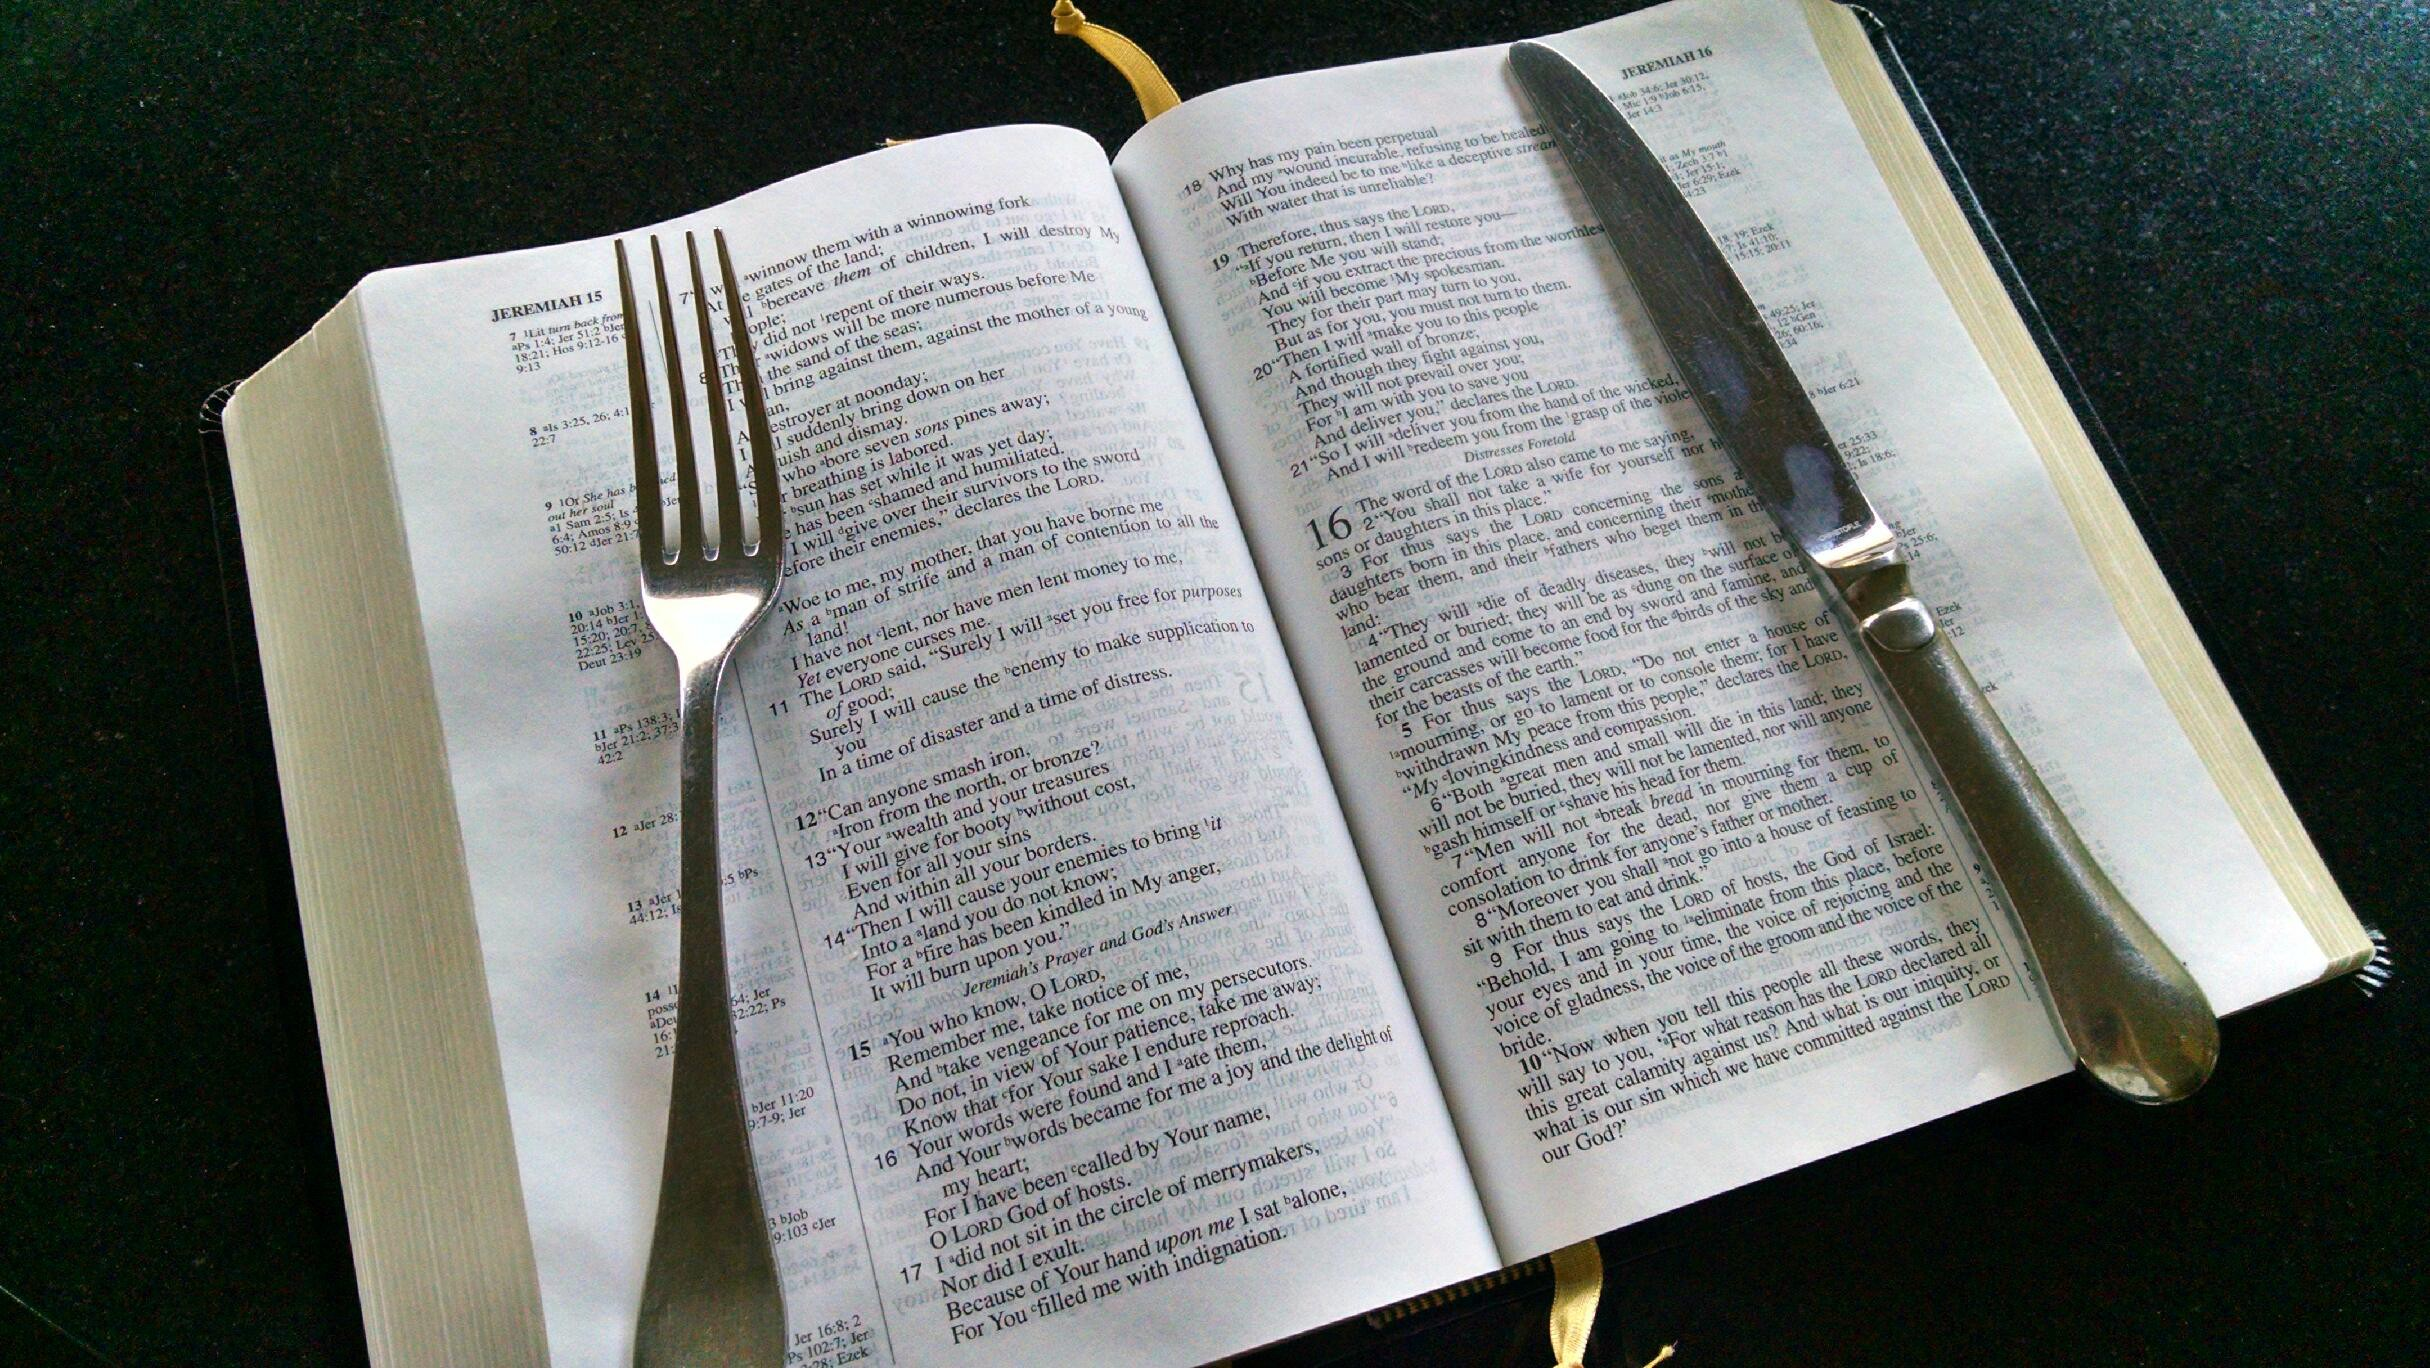 Jeremiah's Menu, Christianity, Bible study, Devotional, Identity